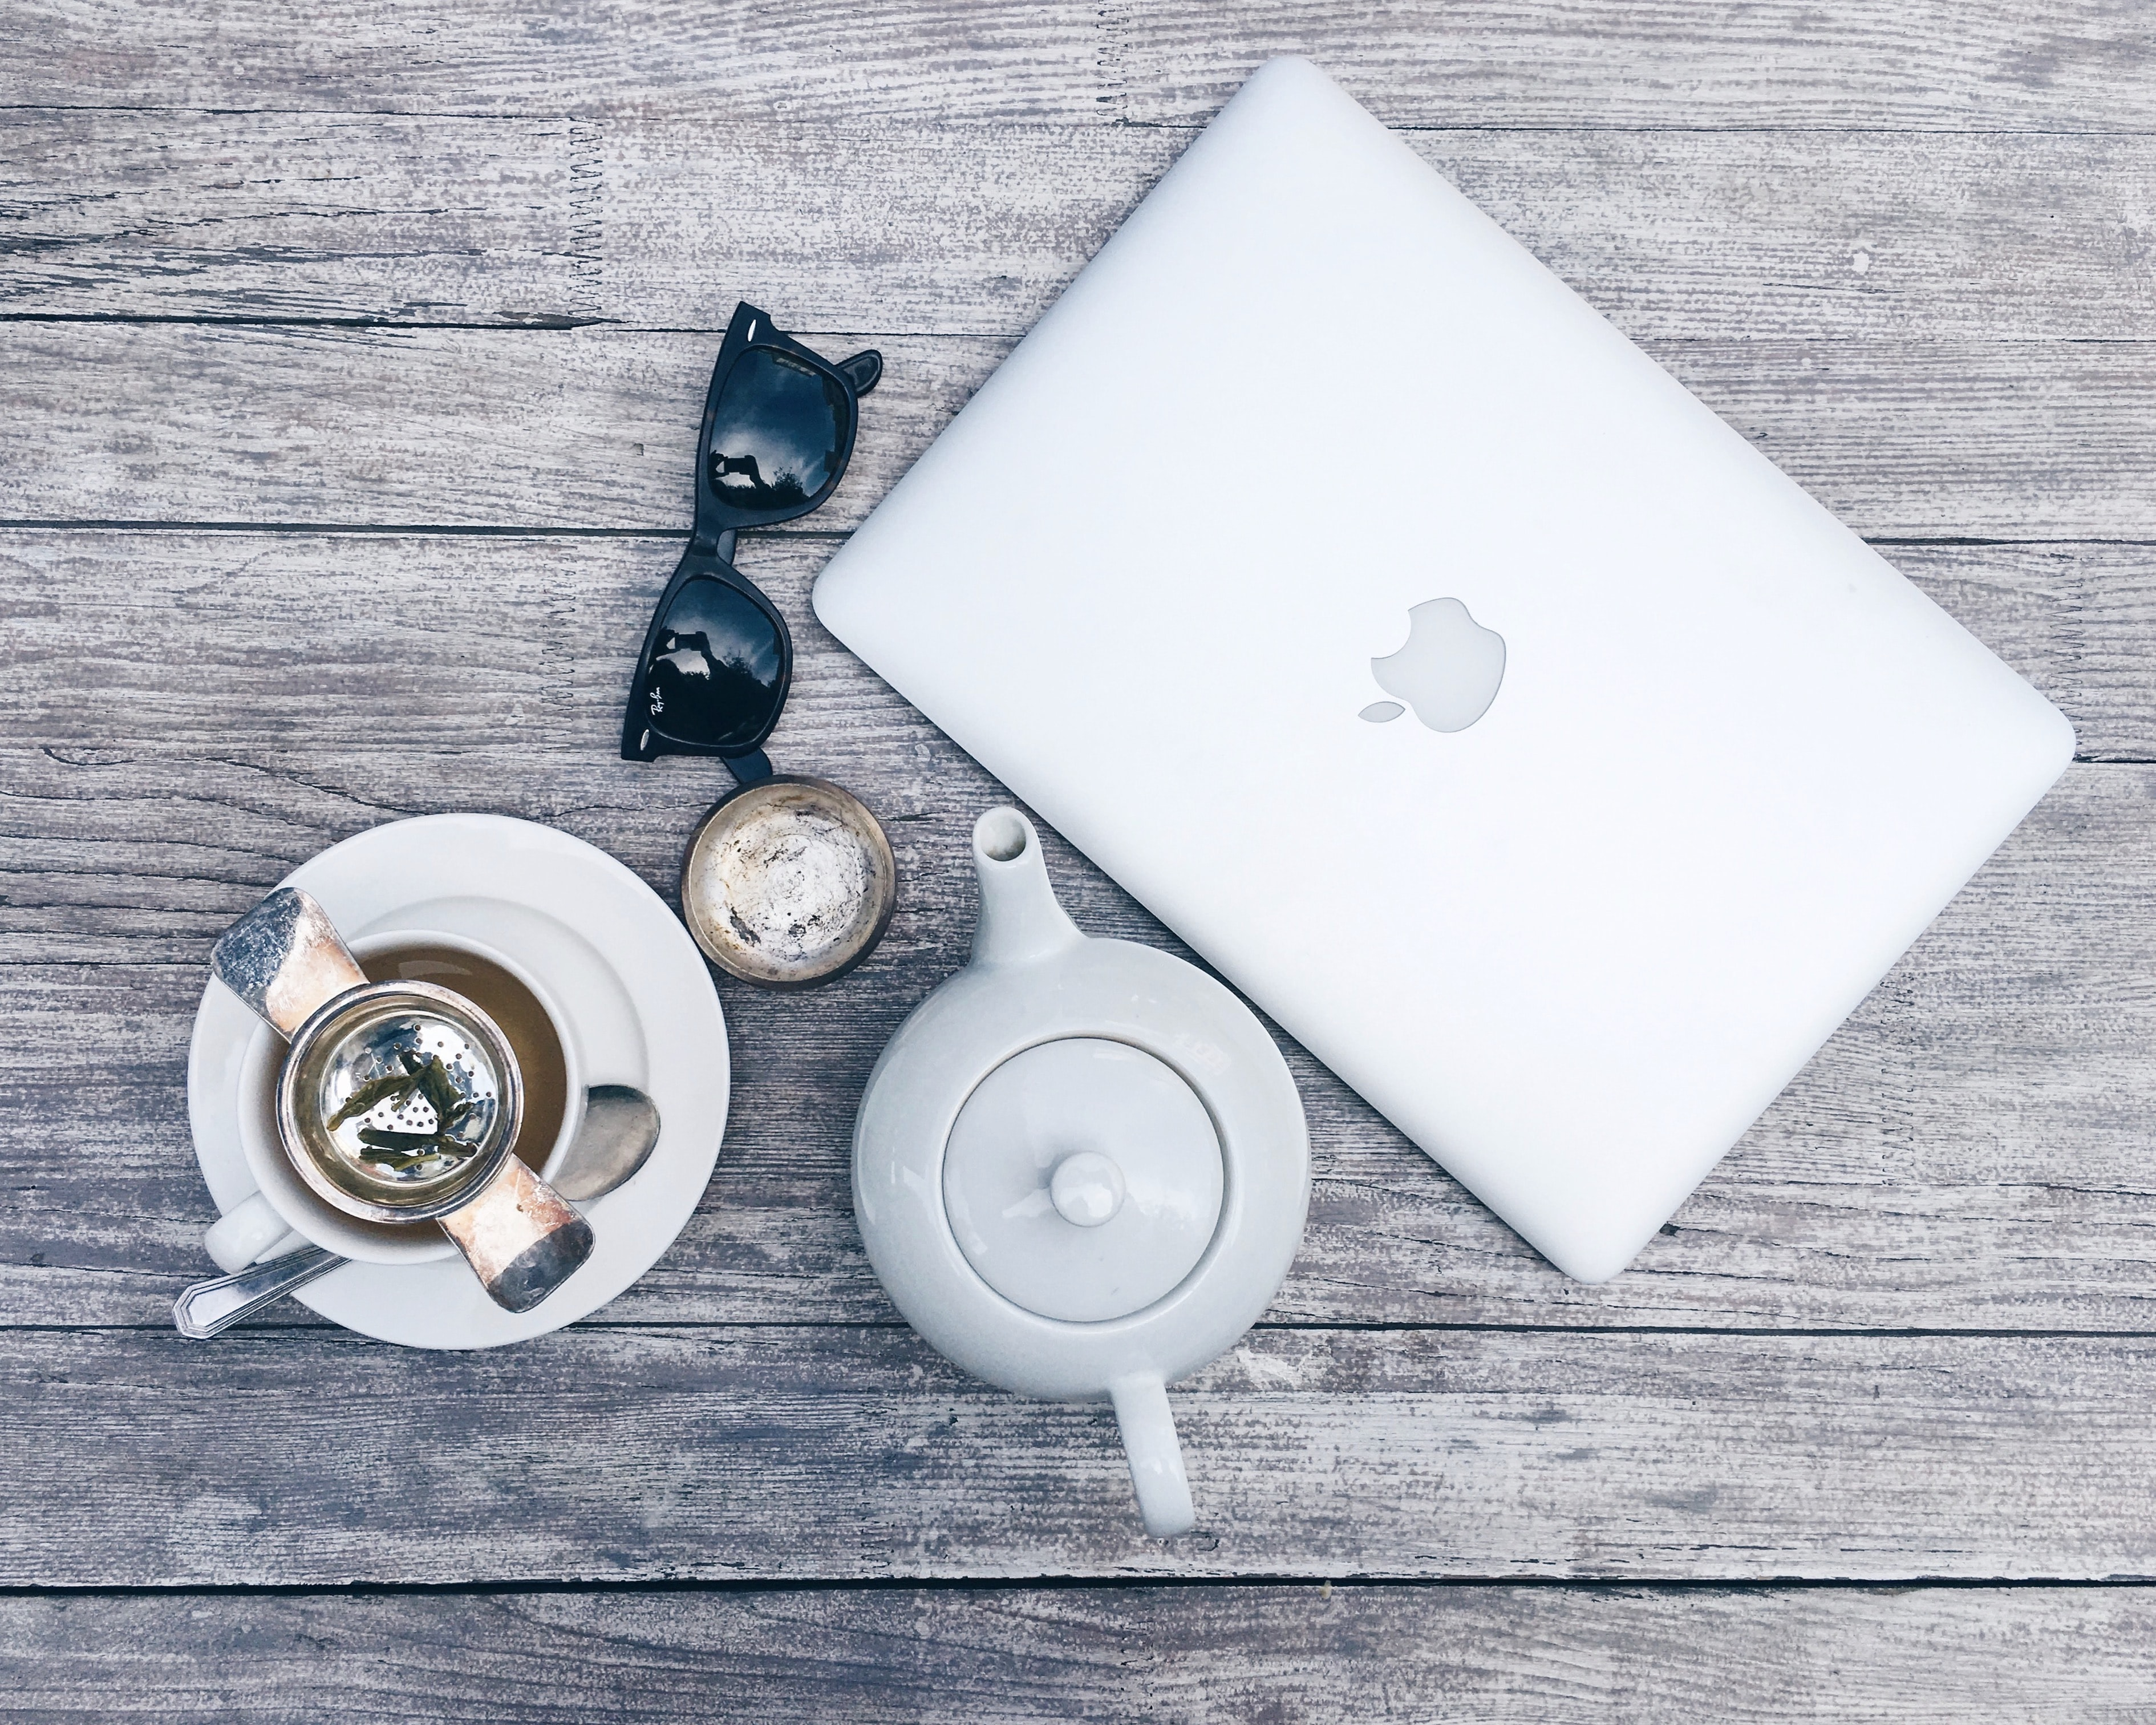 silver MacBook beside white ceramic teapot